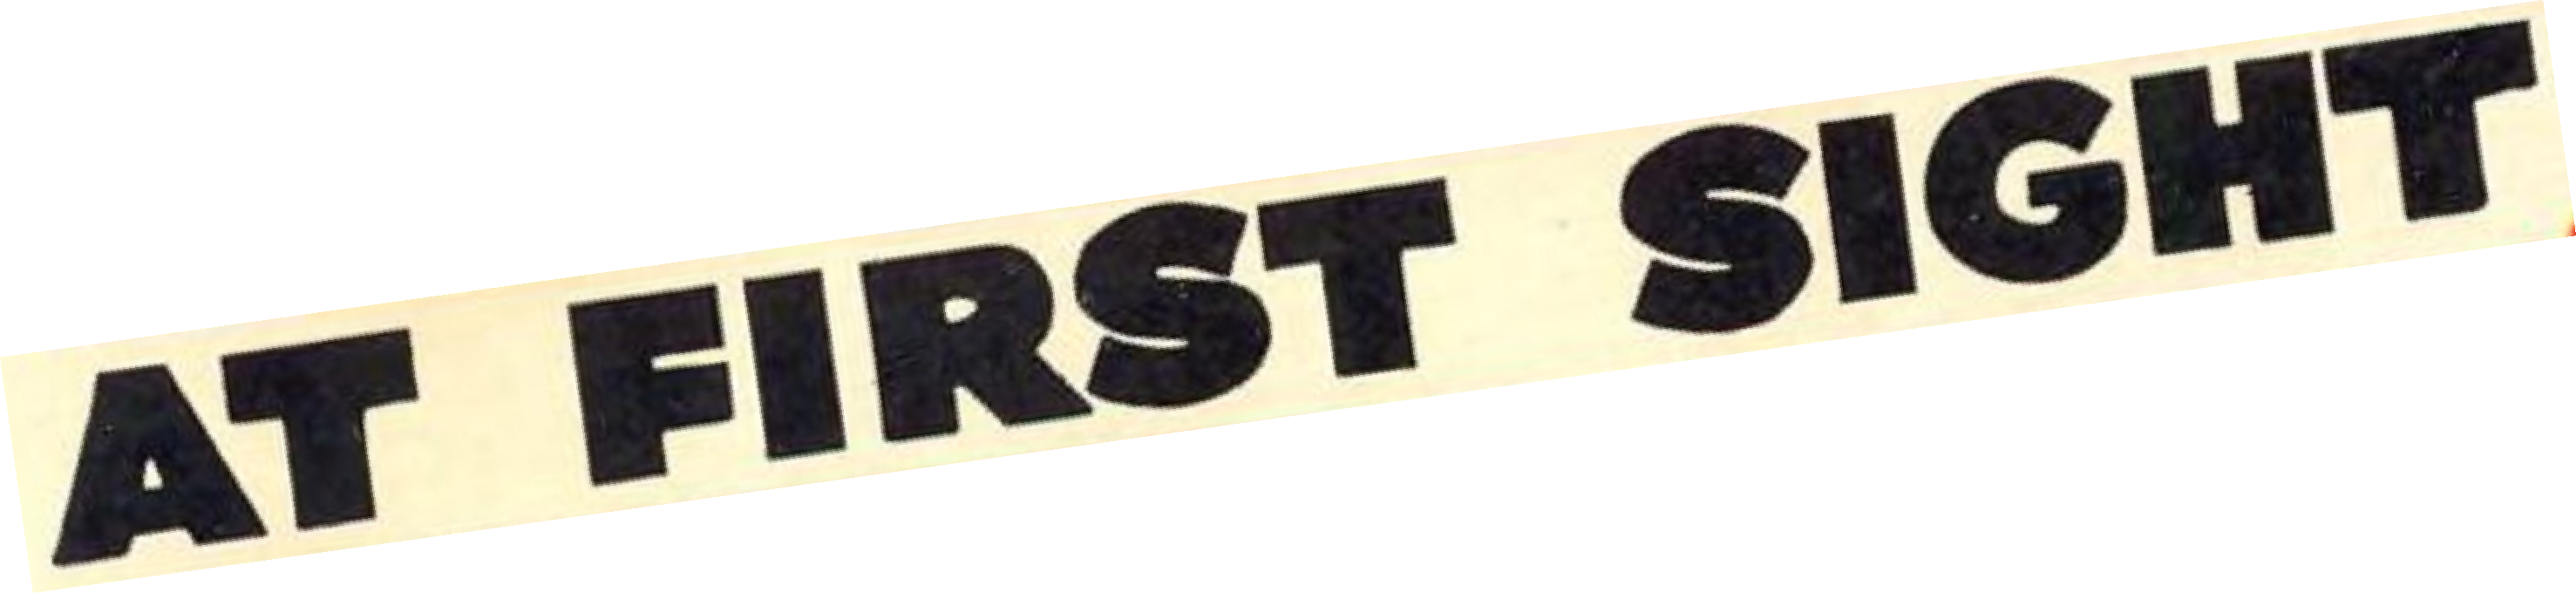 Late Works at first sight logo.